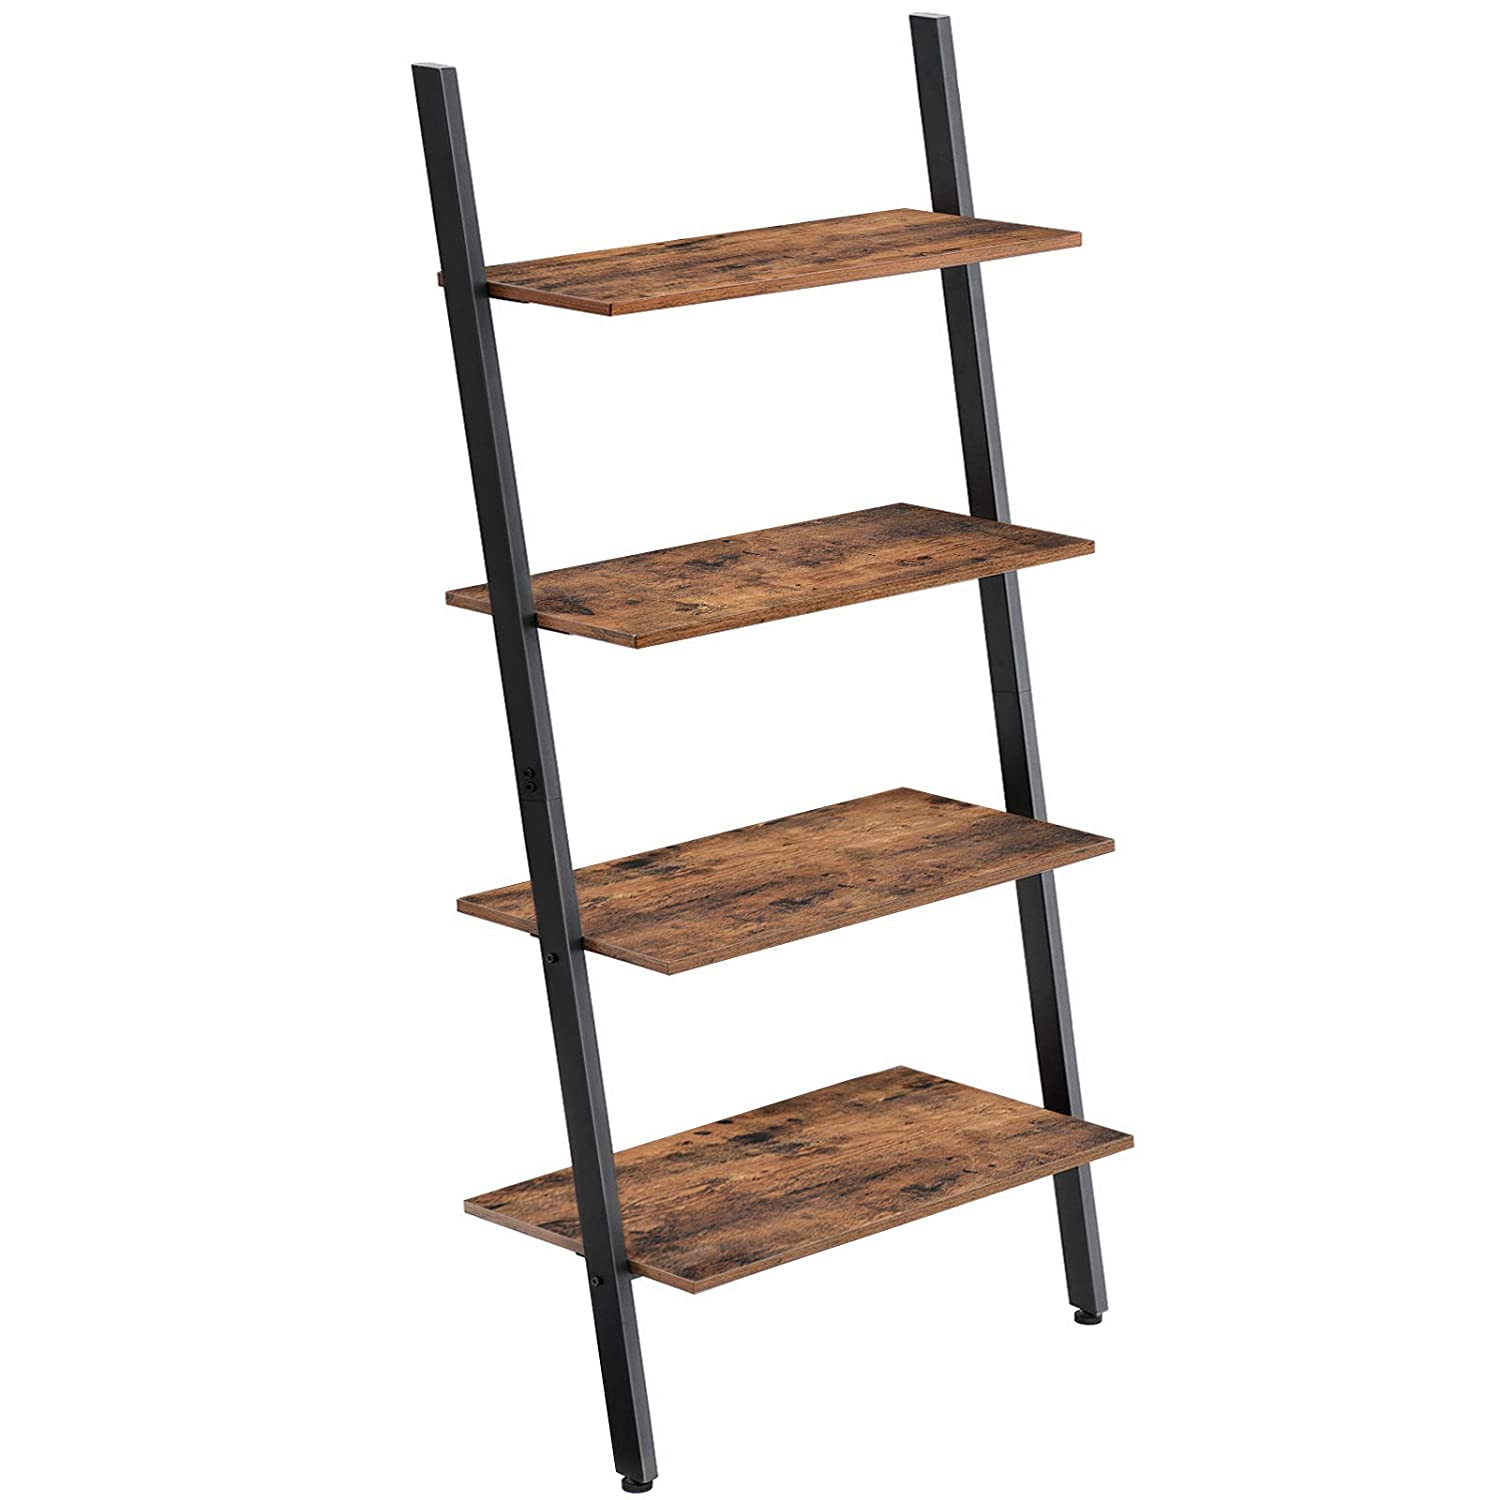 new style eda0b 2a37a VASAGLE Industrial Ladder Shelf, 4-Tier Bookshelf, Storage Rack Shelves,  for Living Room, Kitchen, Office, Iron, Stable, Sloping, Leaning Against  The ...